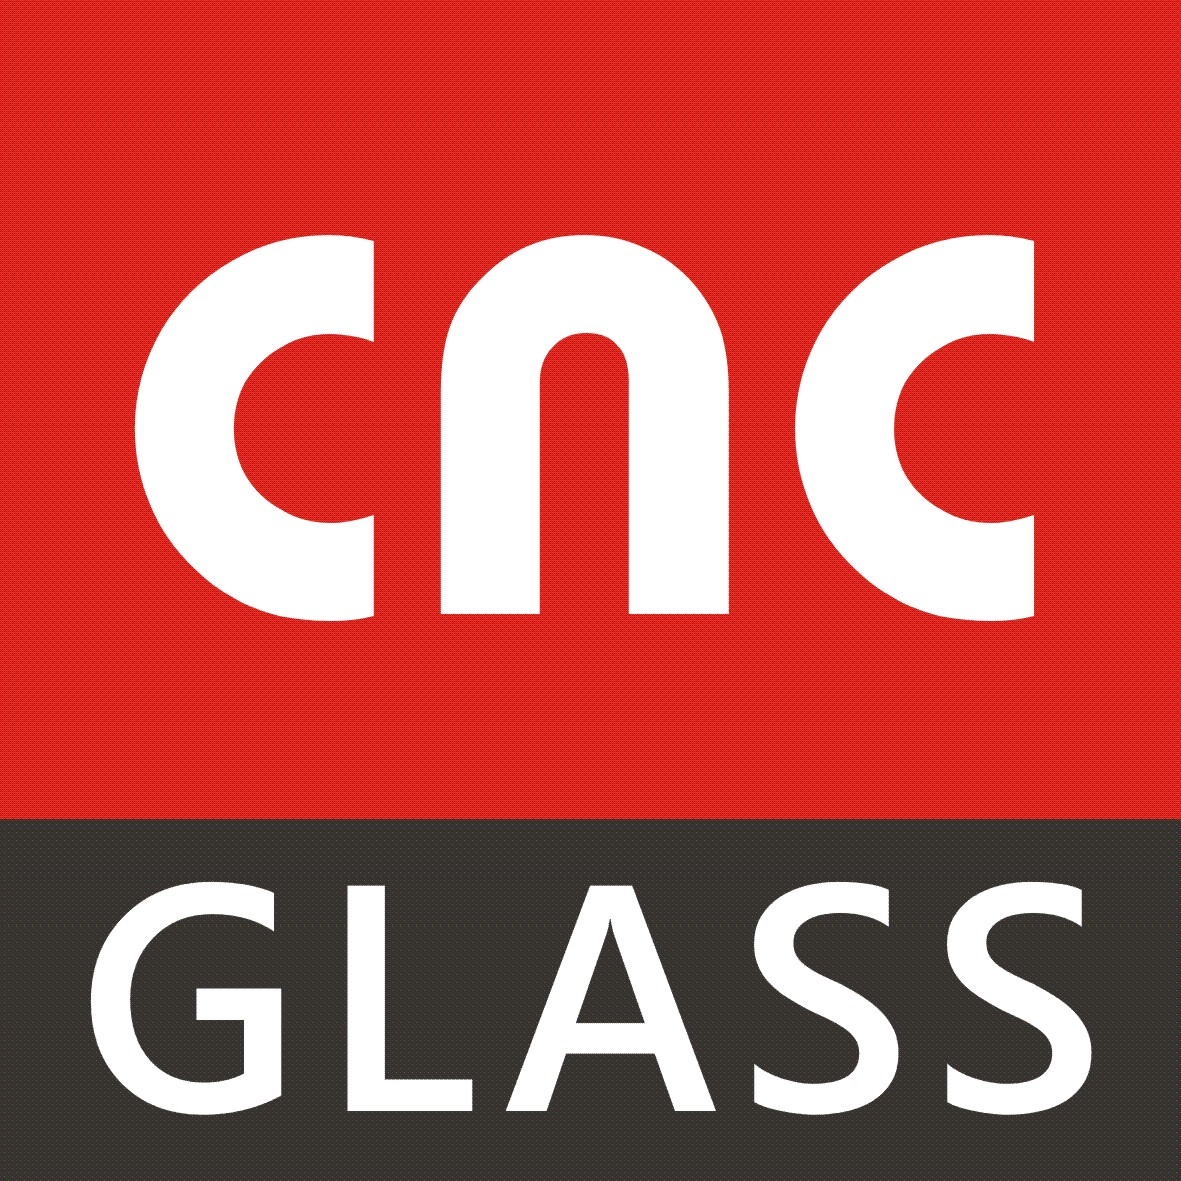 cnc-glass-interlayer